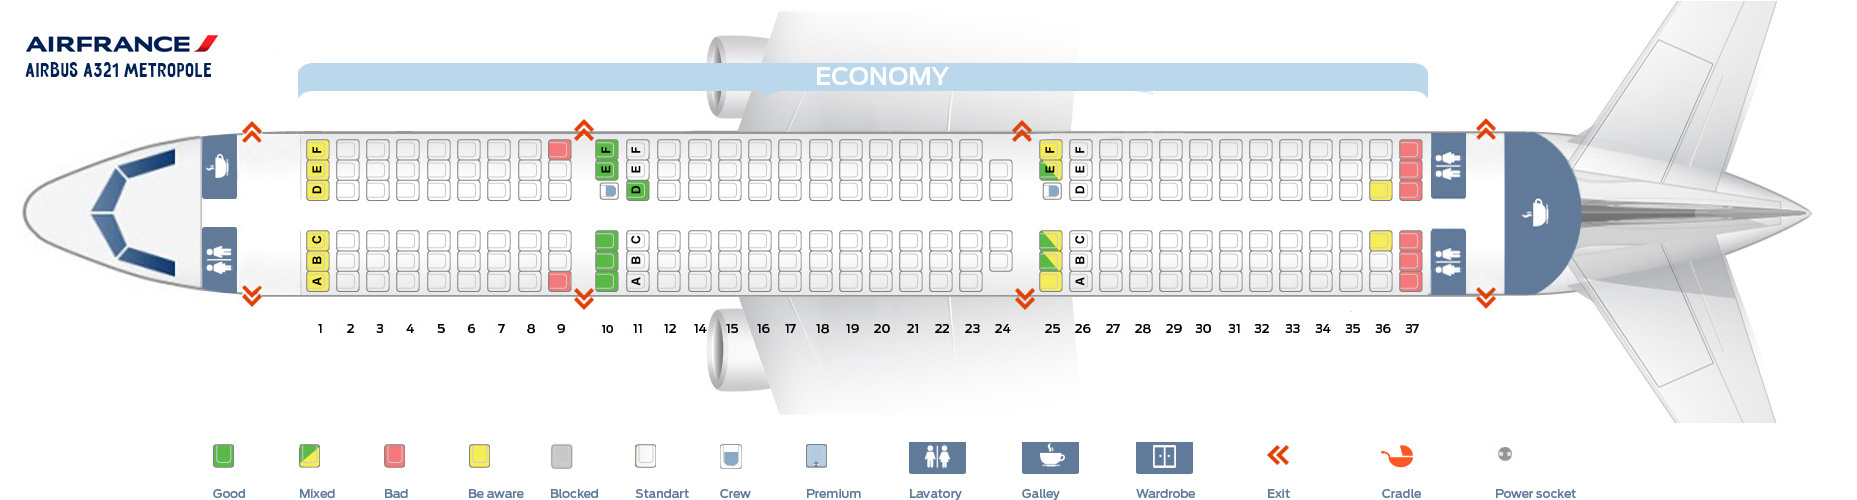 Seat Map Airbus A321 Metropole Air France